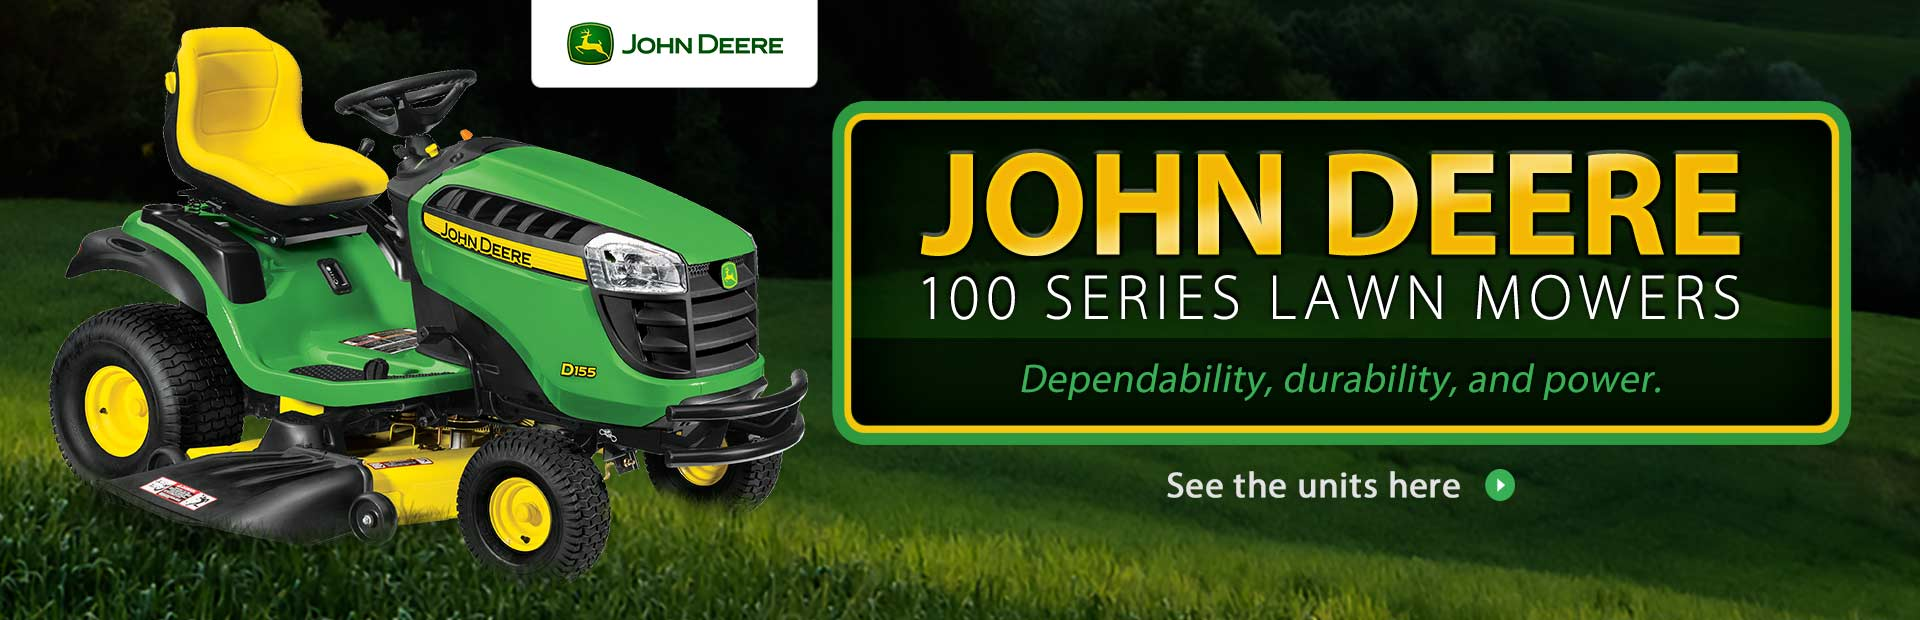 John Deere 100 series lawn mowers are powerful, dependable, and durable! Click here to view our sele